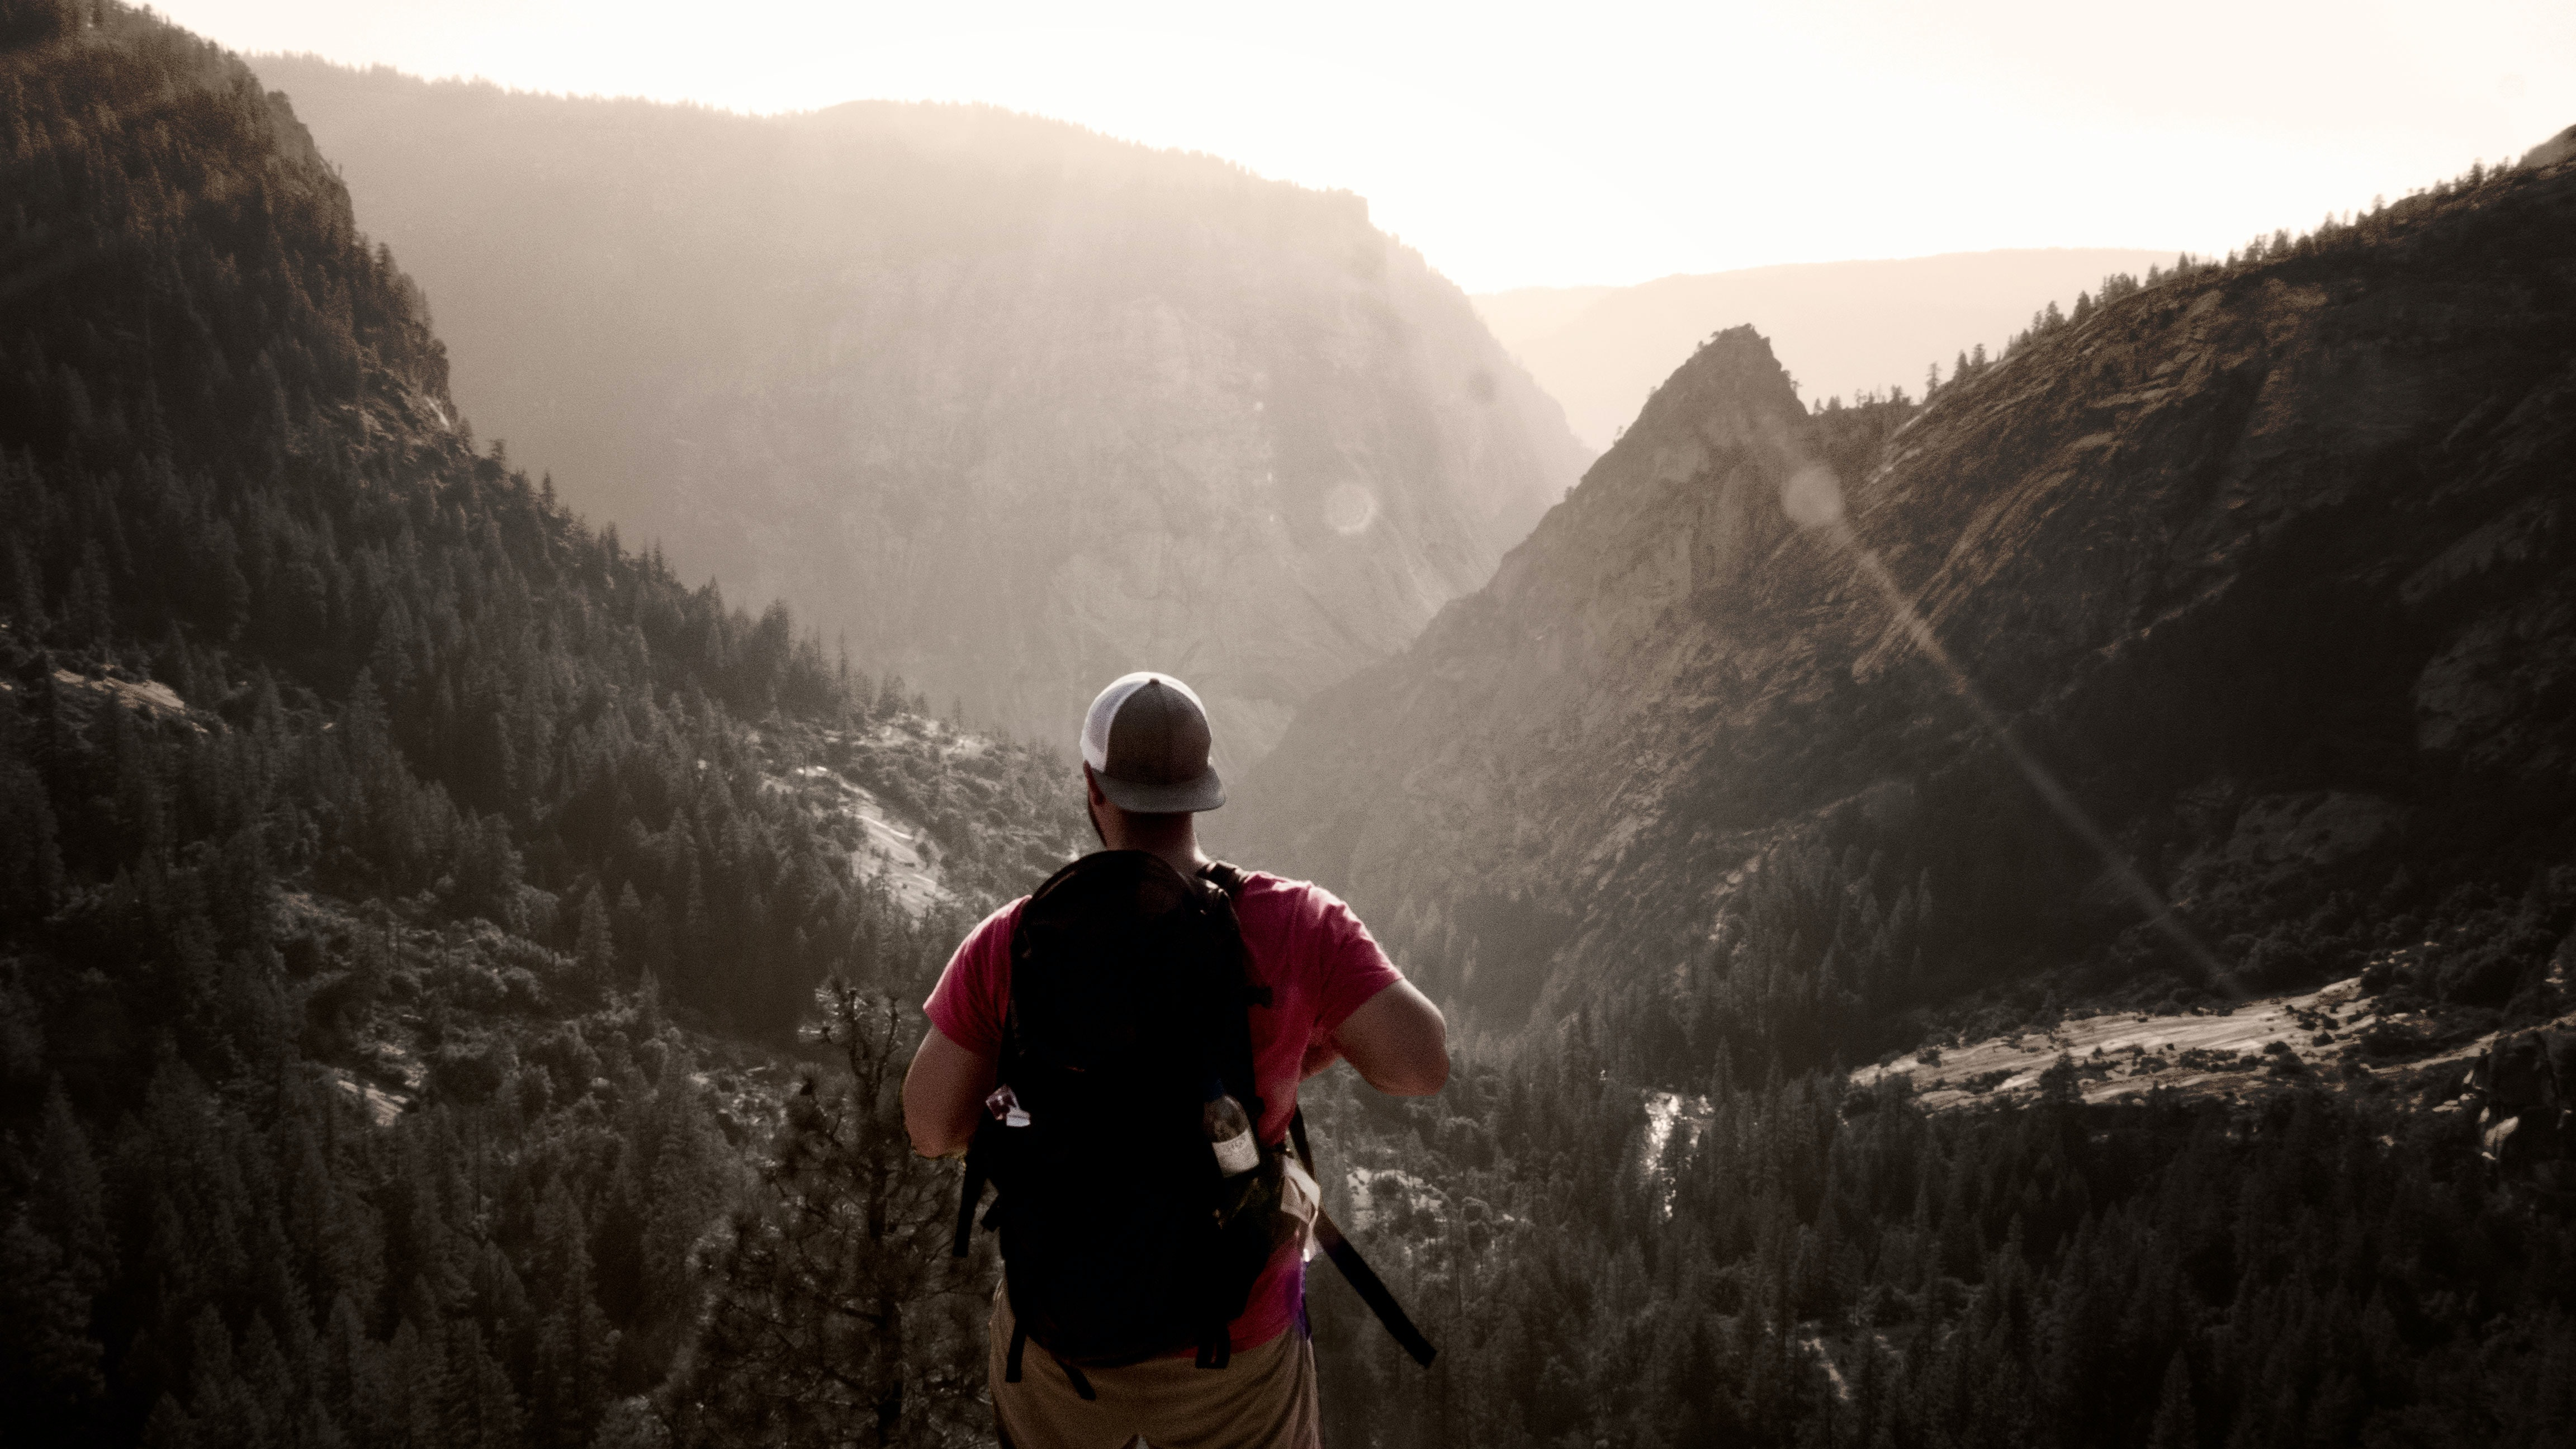 man standing on elevated ground facing mountains during daytime